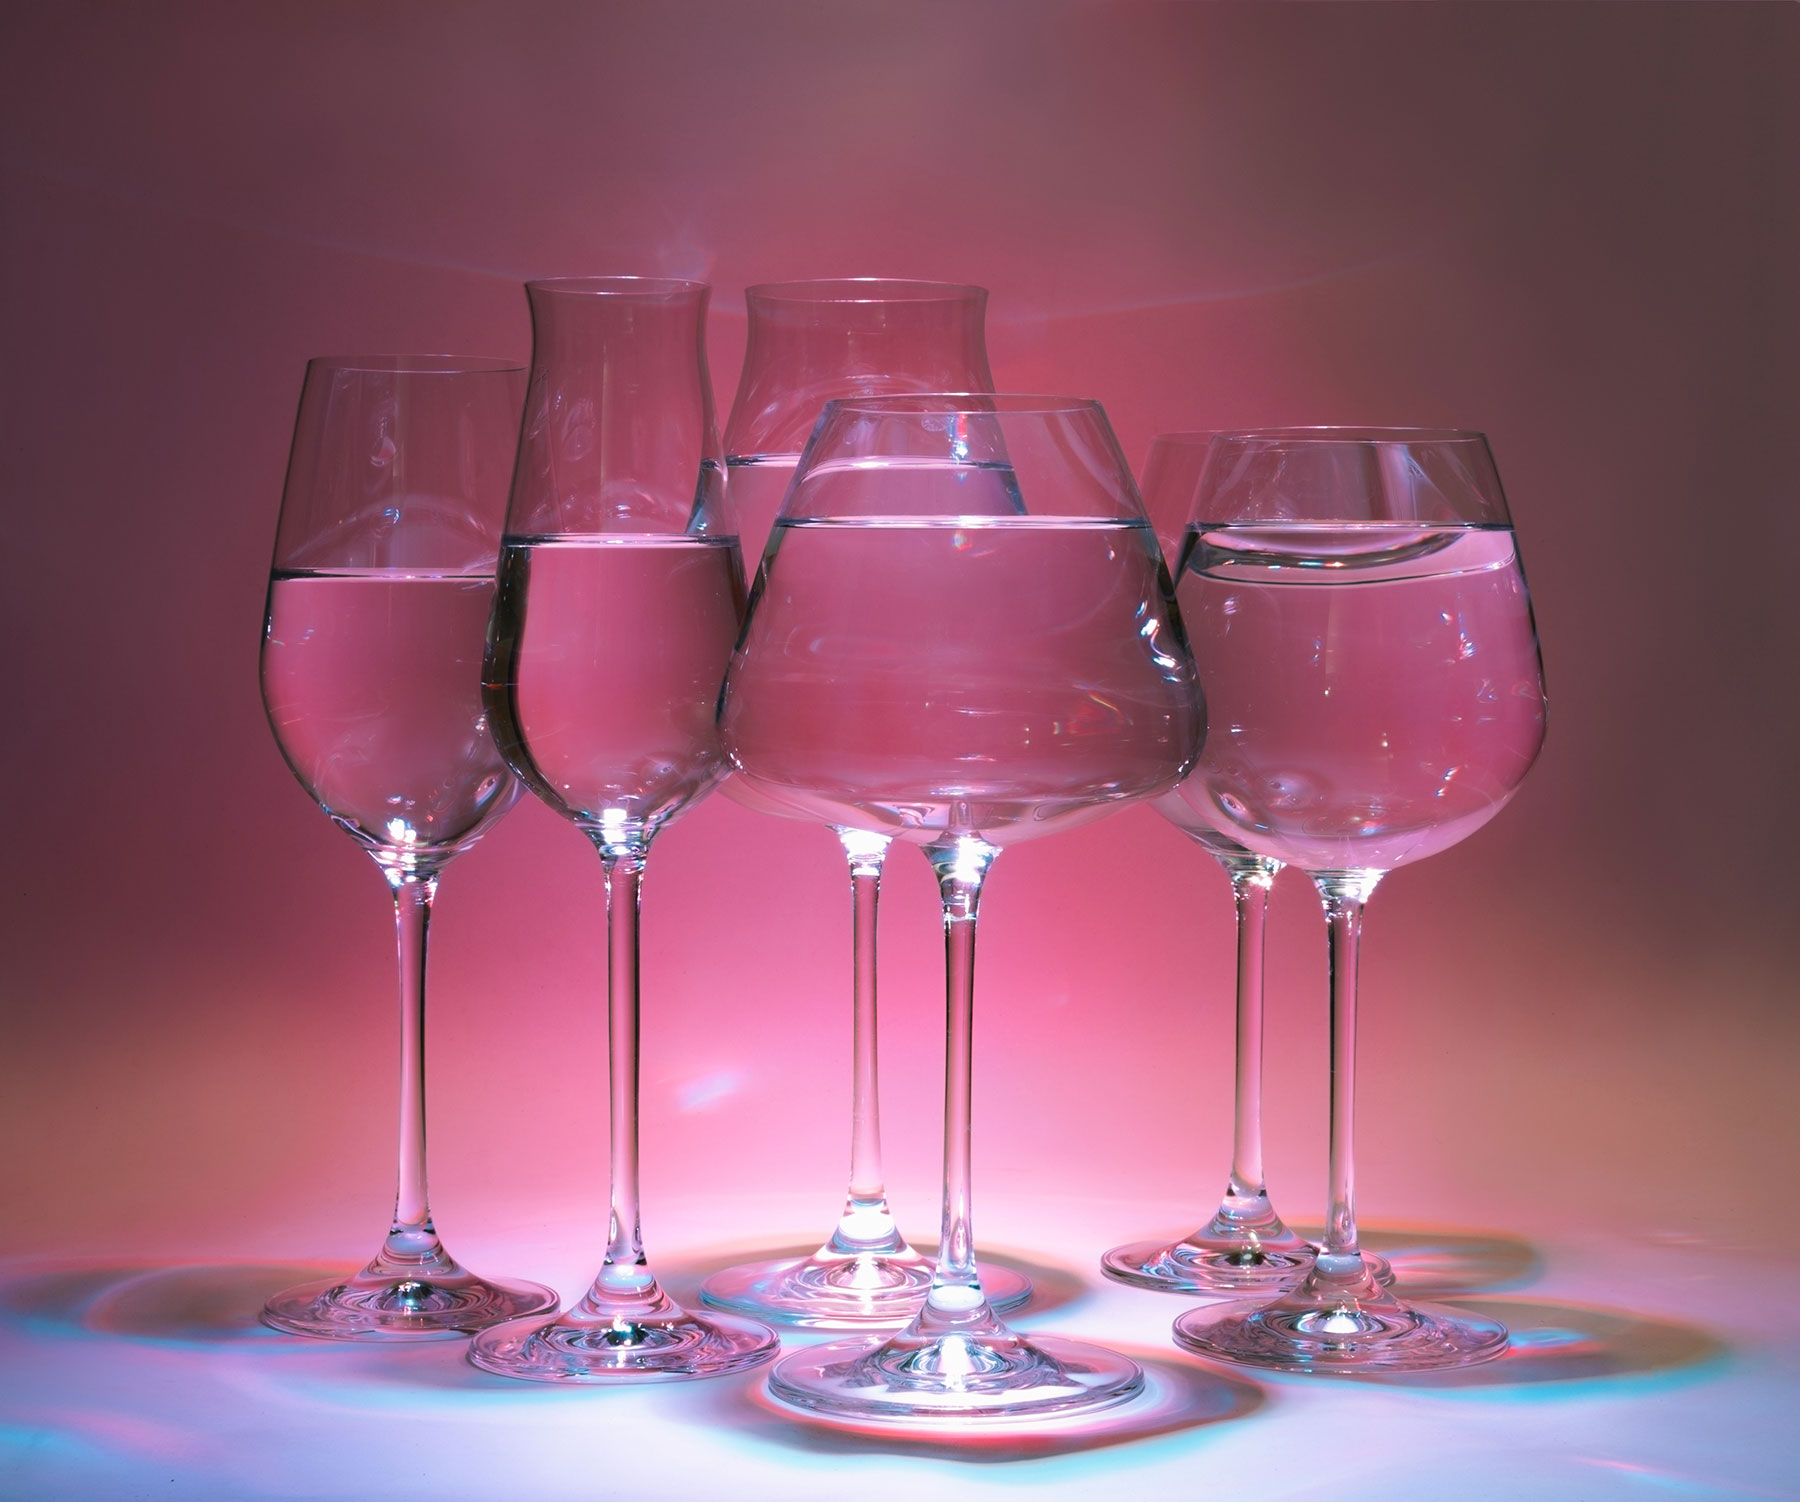 lucaris crystal, wine glasses, glasses, lead free crystal, lucaris india, lucaris asia, aer, red wine, white wine, bully, champagne, special wine glasses, naina.co, naina redhu, experience collector, wine glass study, still life, glasses still life, wine glasses still life, color gel, colored lights, studio photography, product photography, wine glass photography, naina, luxury photographer, luxury blogger, lifestyle photographer, lifestyle blogger, luxury blogger india, photographer blogger india, photo blogger india, professional photographer india, visual story teller, brand storyteller